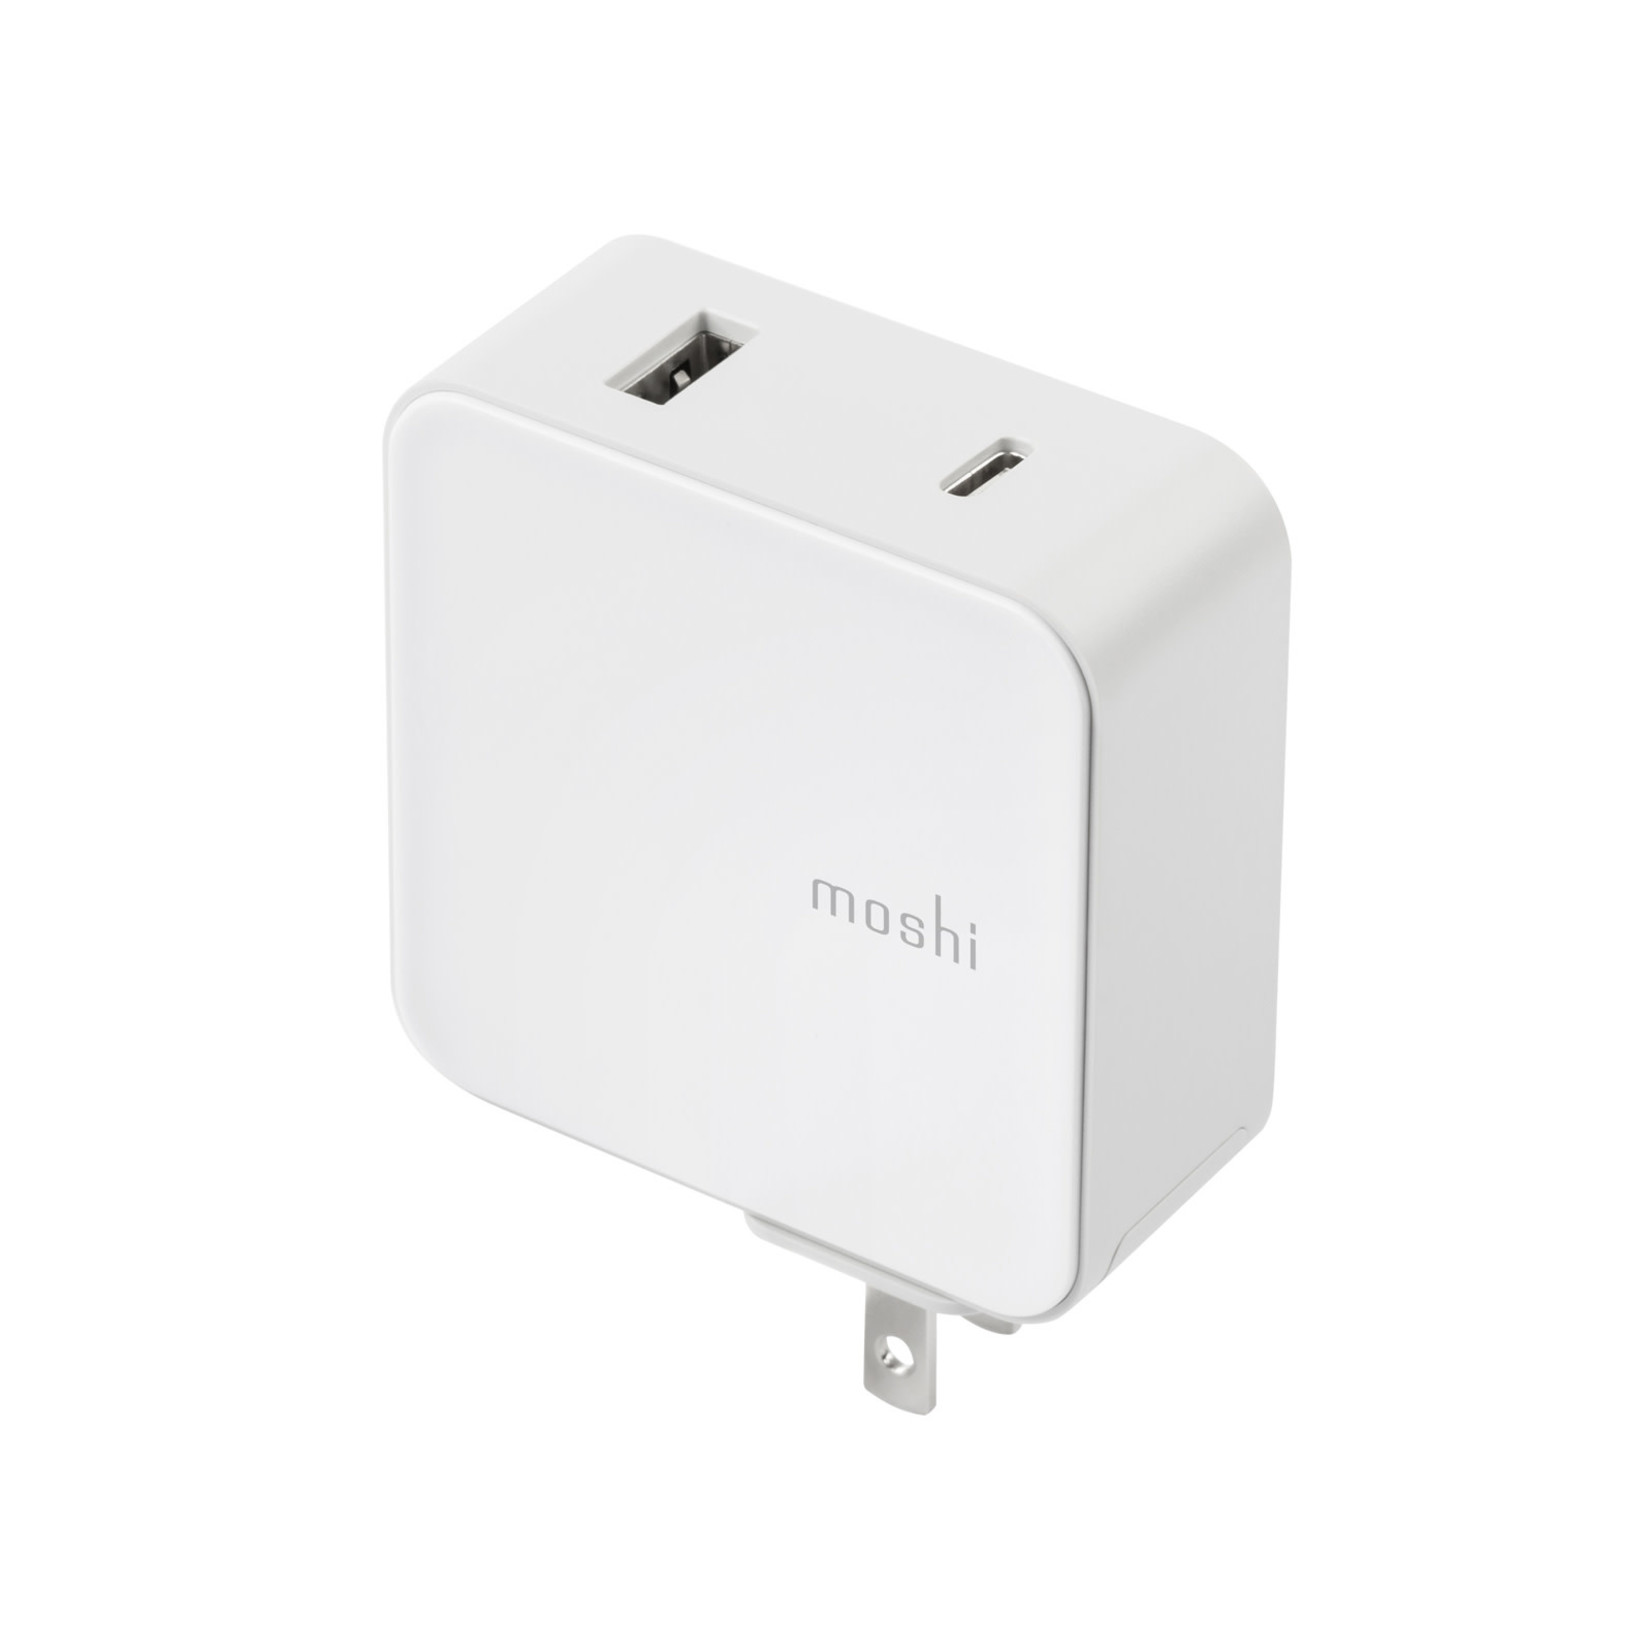 Moshi ProGeo USB-C Wall Charger with USB Port (42 W) US